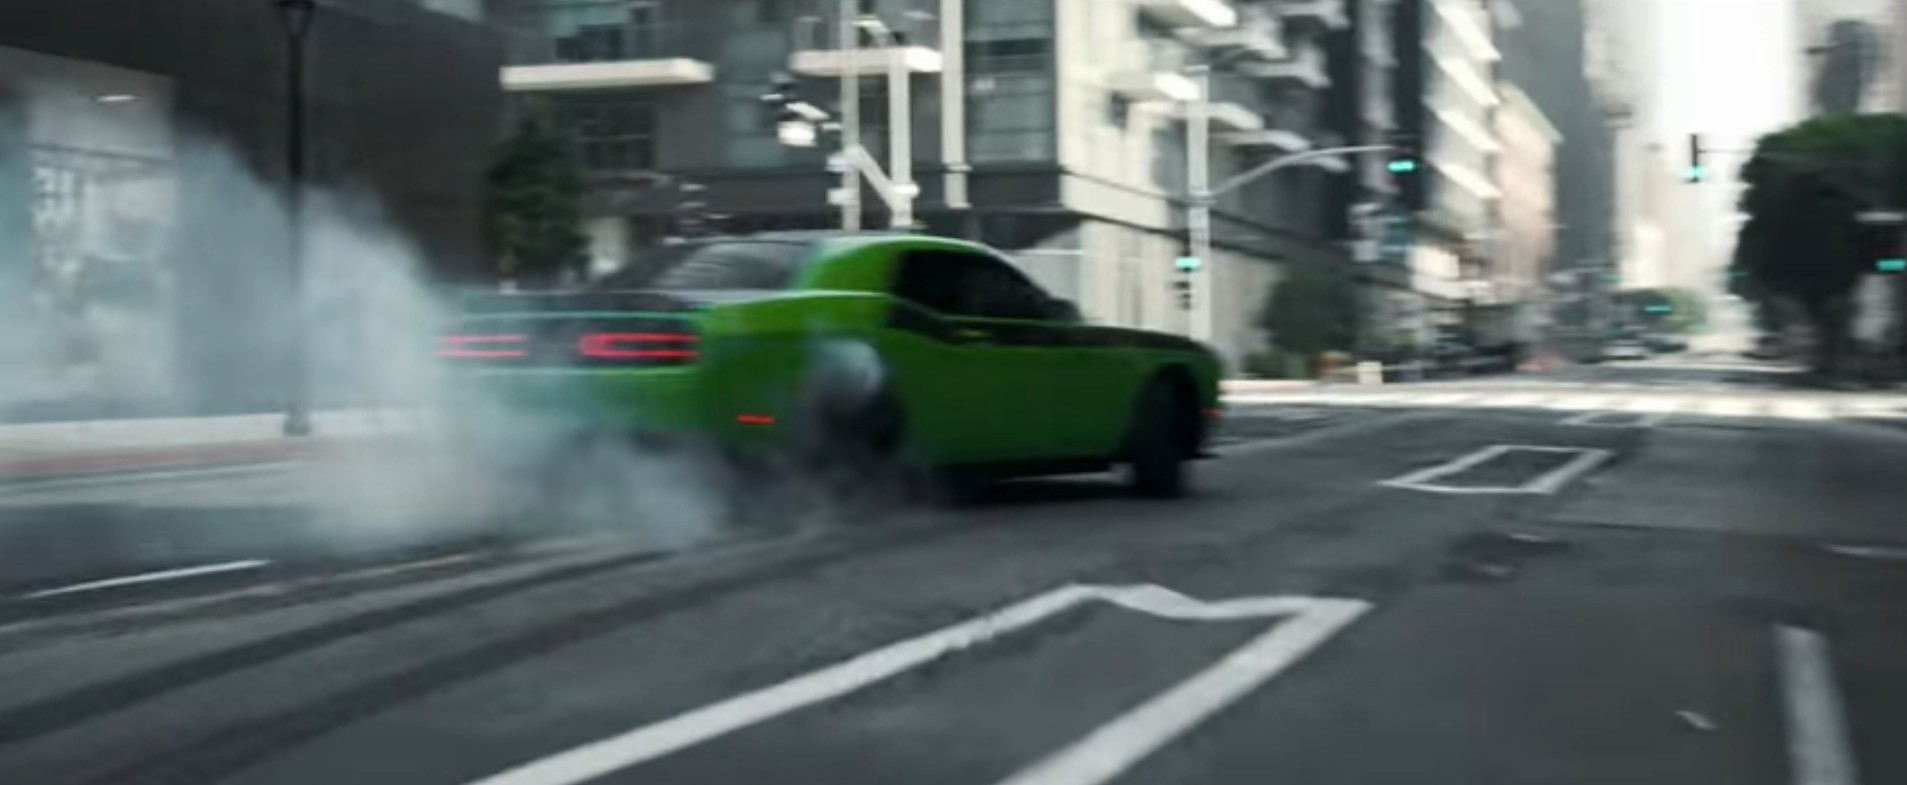 Vin Diesel Stars In Dodge Srt Ads He Is The Perfect Actor For Them